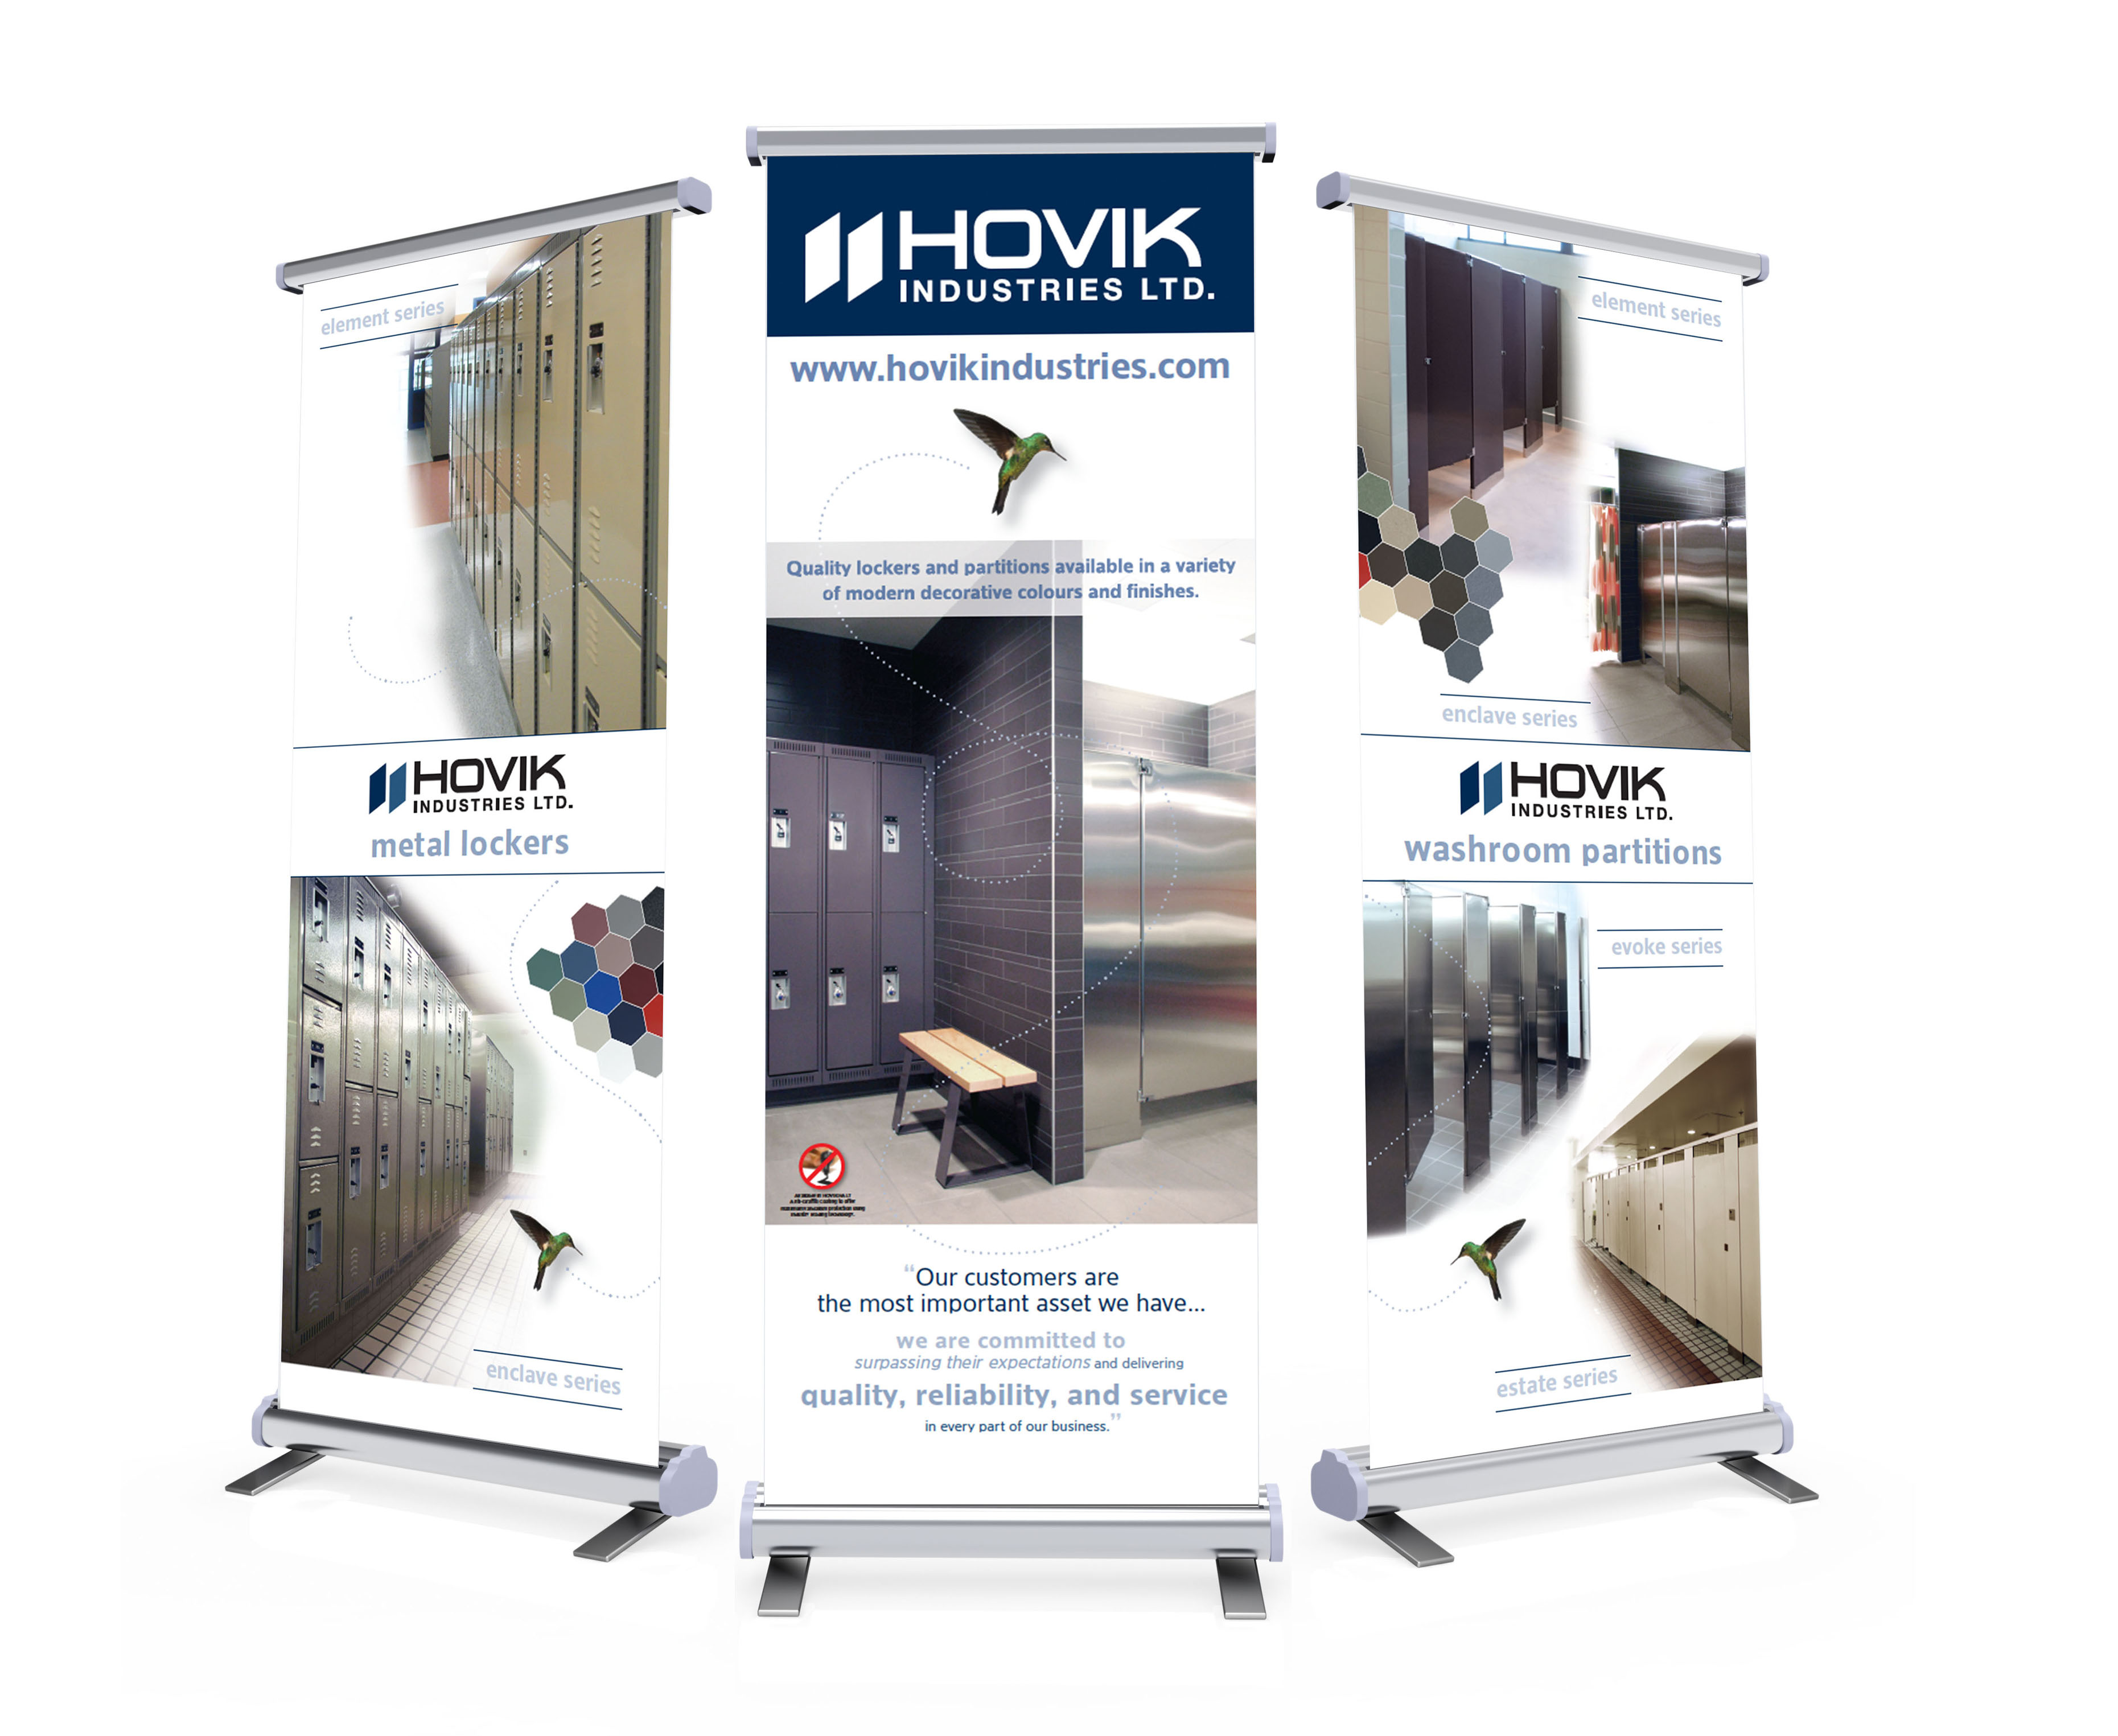 Hovik Tradeshow Pull-Up Banners